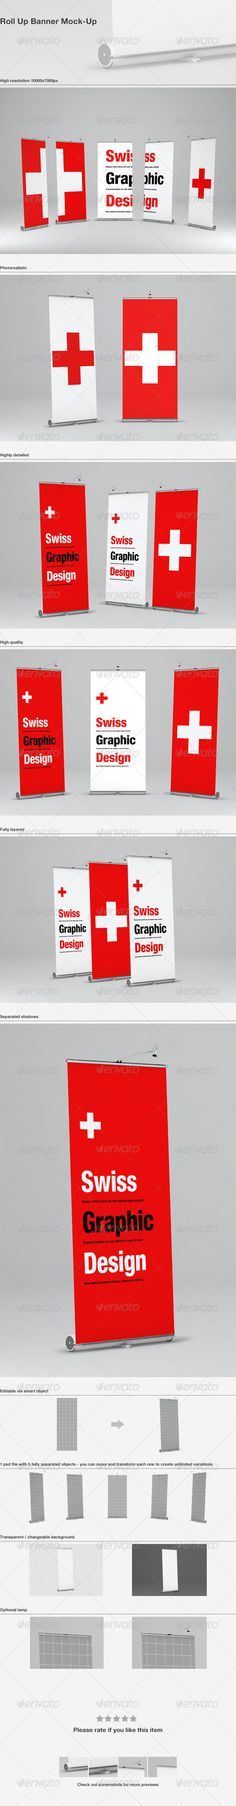 Buy Roll Up Banner Mock-Up by Zeisla on GraphicRiver. Roll Up Banner Mock-Up Features 1 Psd File 5 Different angles degrees degrees, 0 degrees) Bann. Letterhead Template, Indesign Templates, Cool Business Cards, Business Card Logo, Exhibition Banners, Standing Banner Design, Roll Up Design, Pop Up Banner, Mockup Photoshop